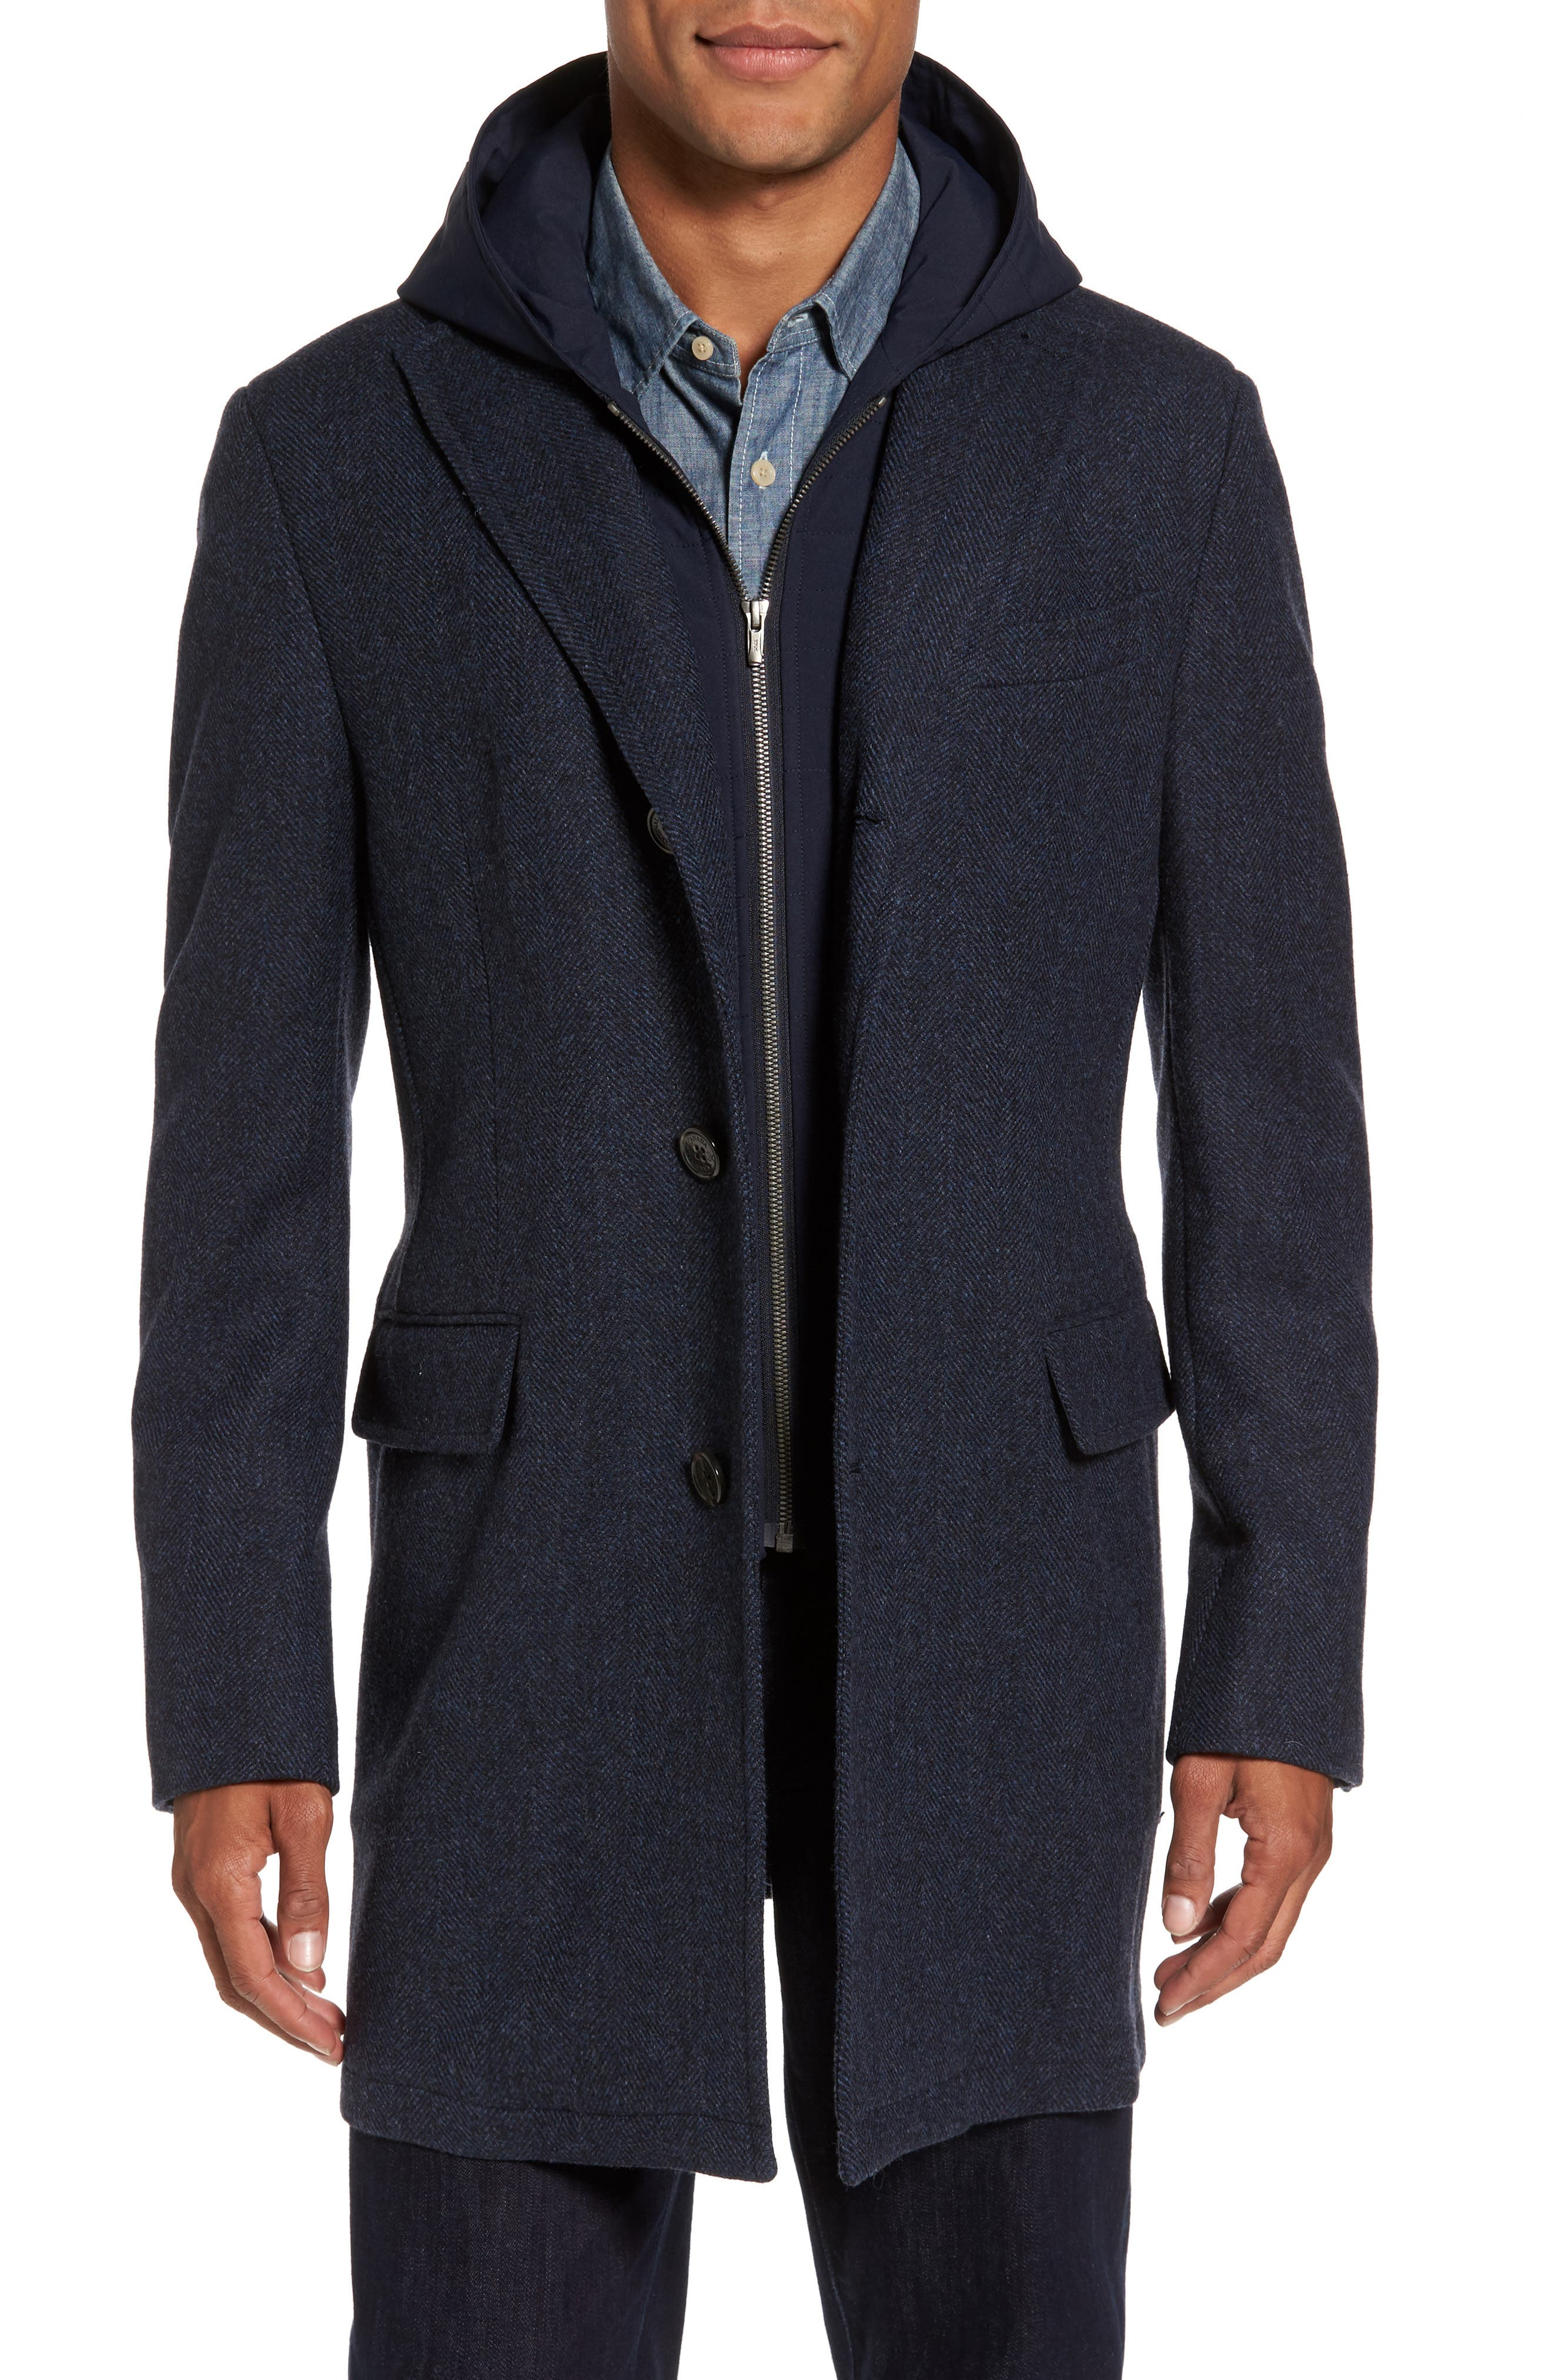 Cardinal of Canada Hooded Wool & Cashmere Top Coat